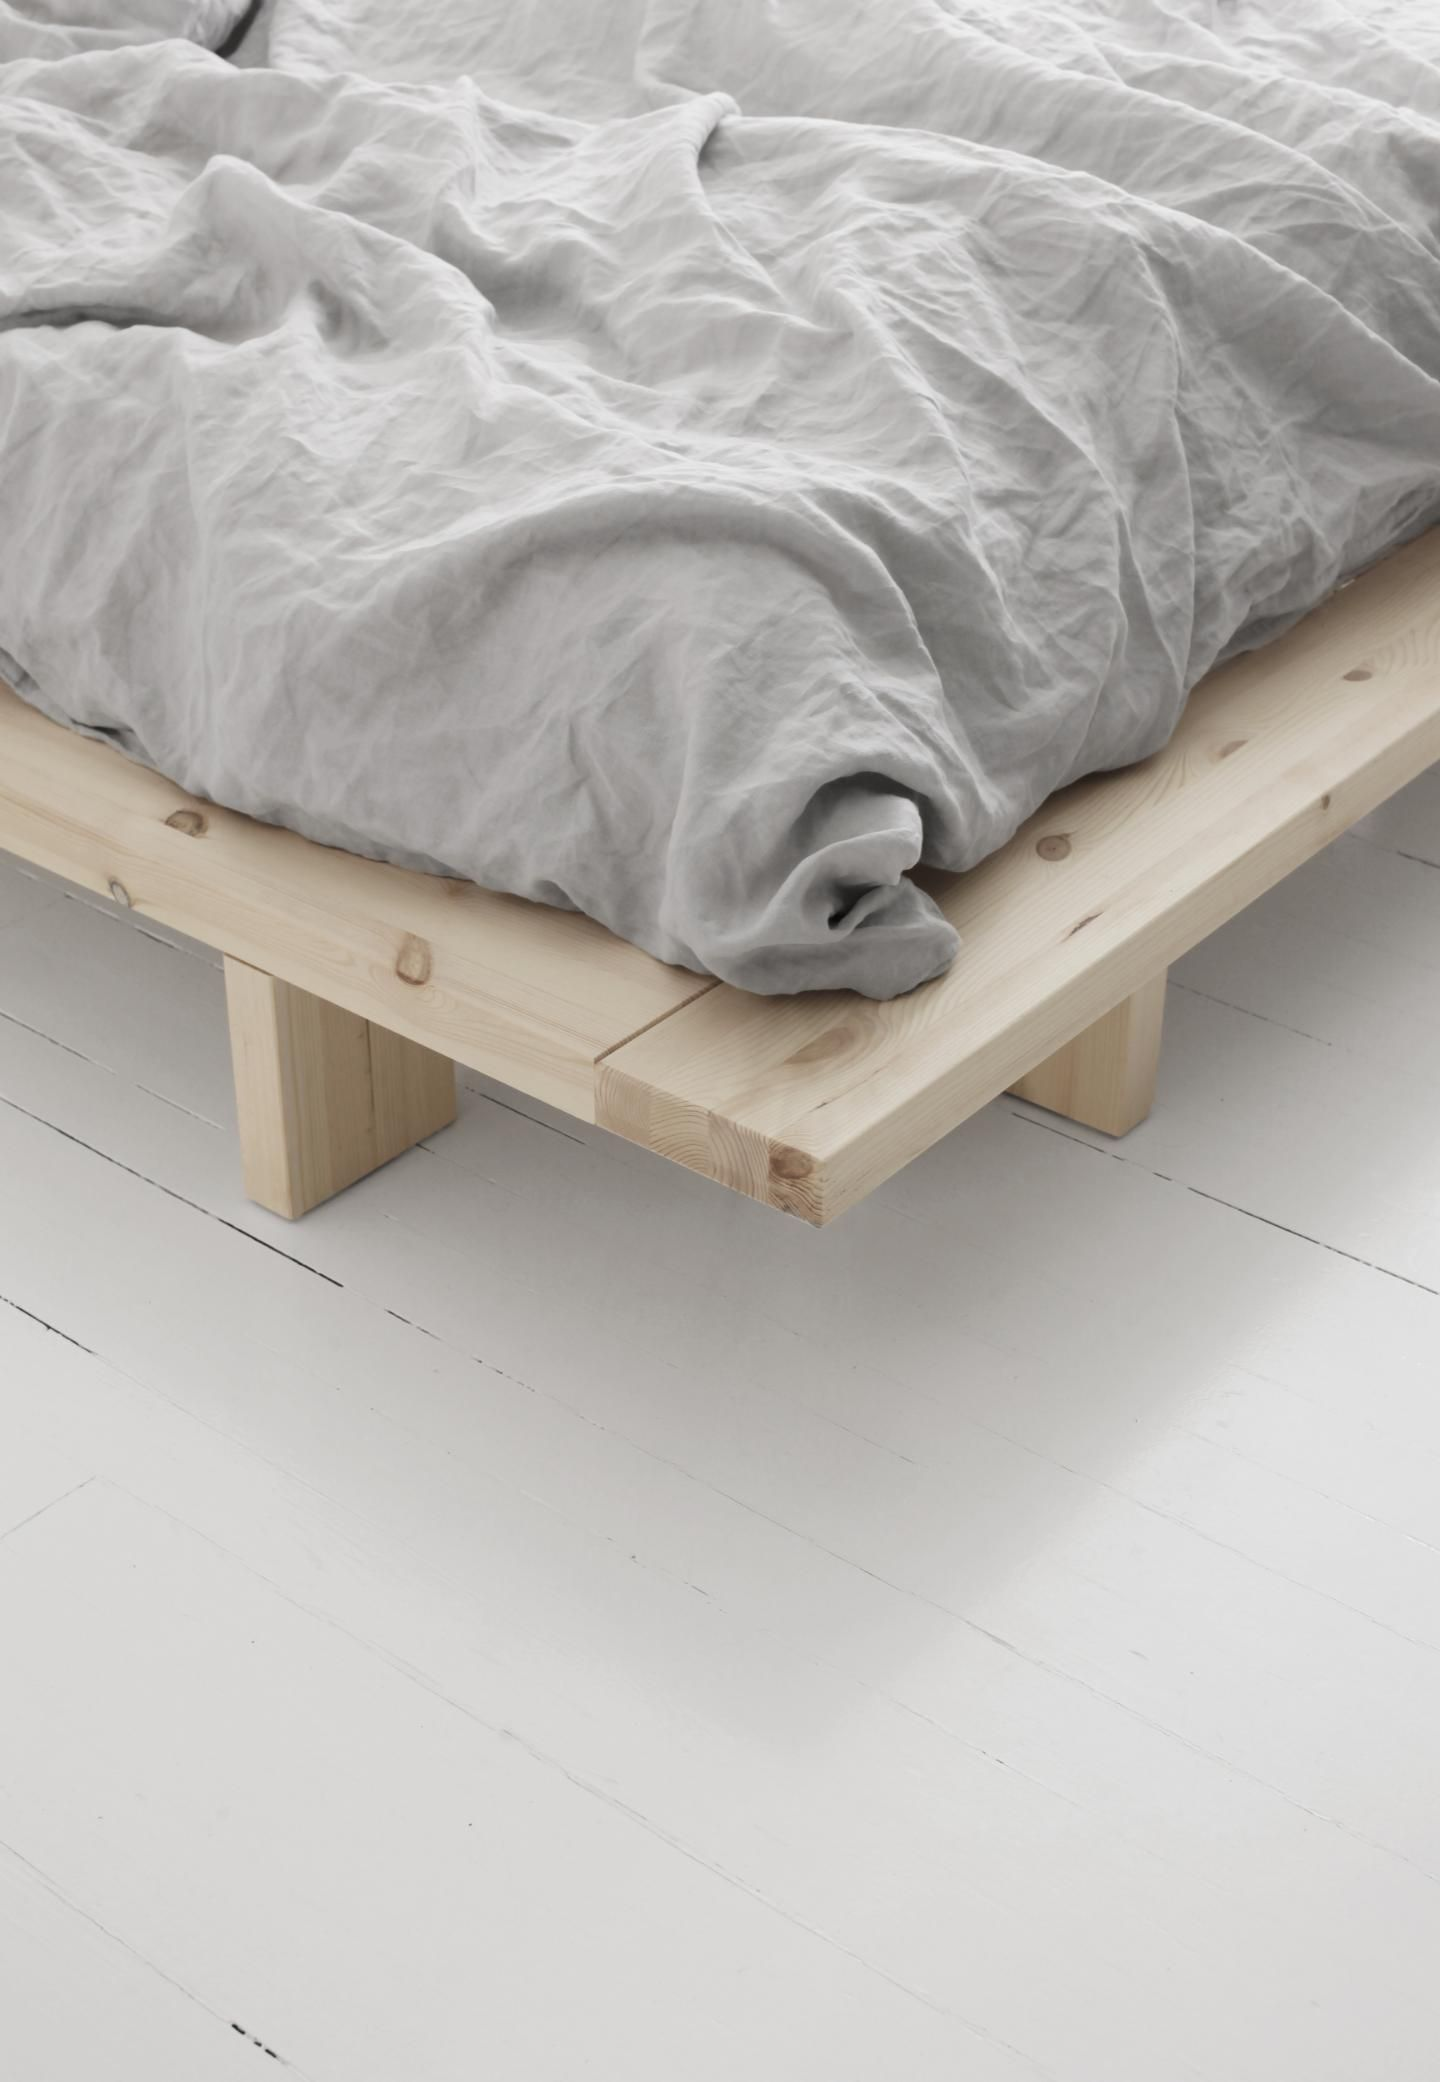 JAPAN BED FRAME 140 X 200 RAW in 2020 Bed frame